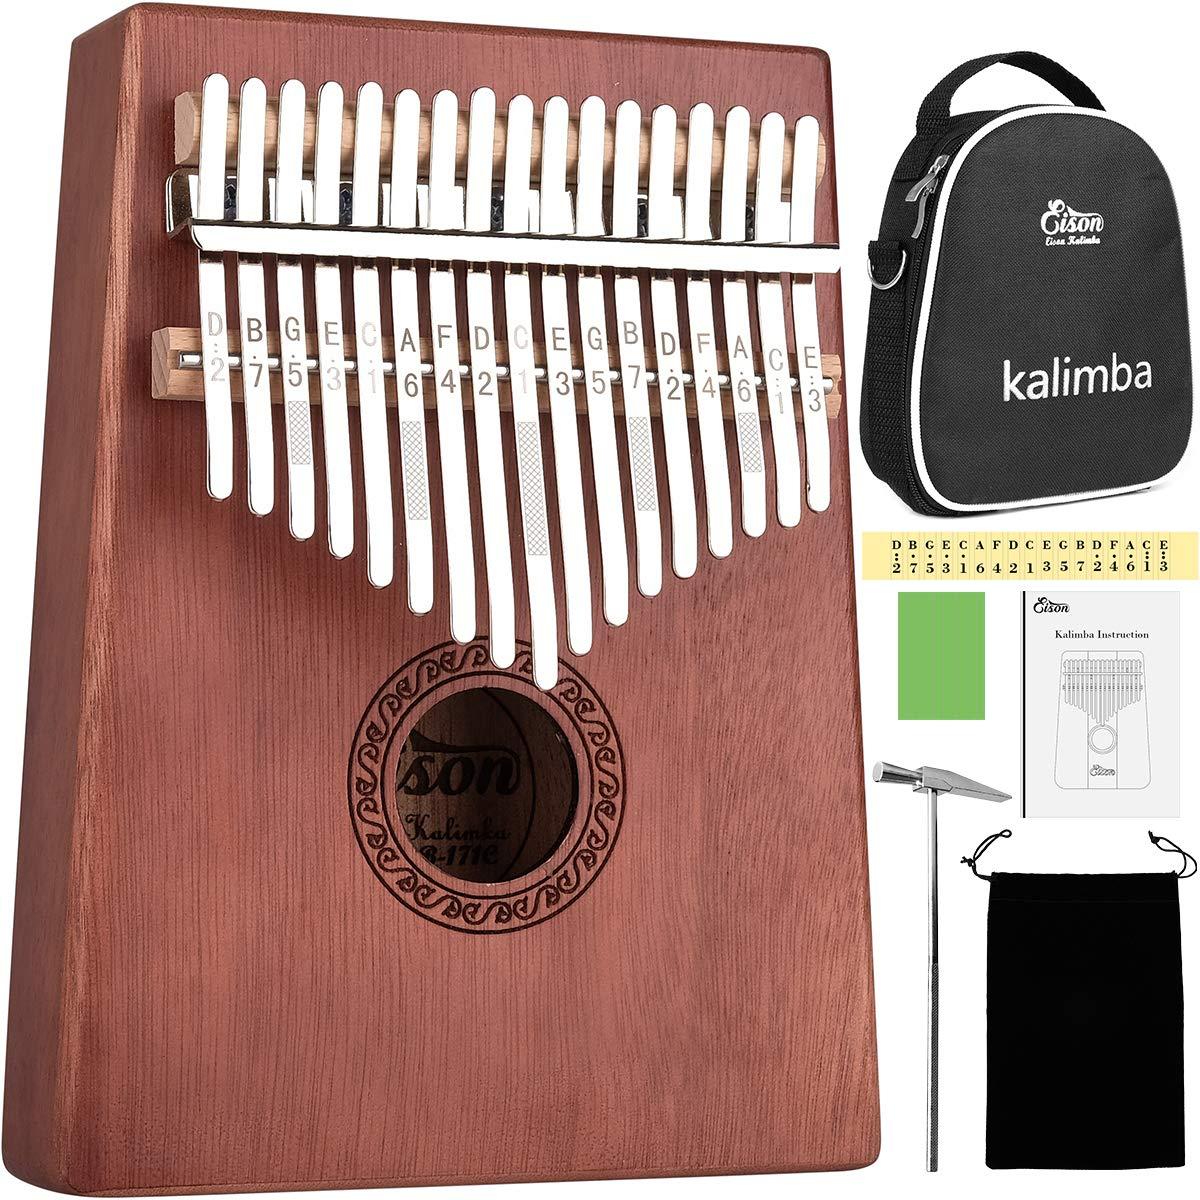 Kalimba,Eison Kalimba Thumb Piano 17 keys with Case Bag, African Finger Piano Kit, Cloth bag, Instruction, Tune Hammer, Key Stickers, Solid Wood Mahogany Body- Best Gift for Music Fans Adult Kids